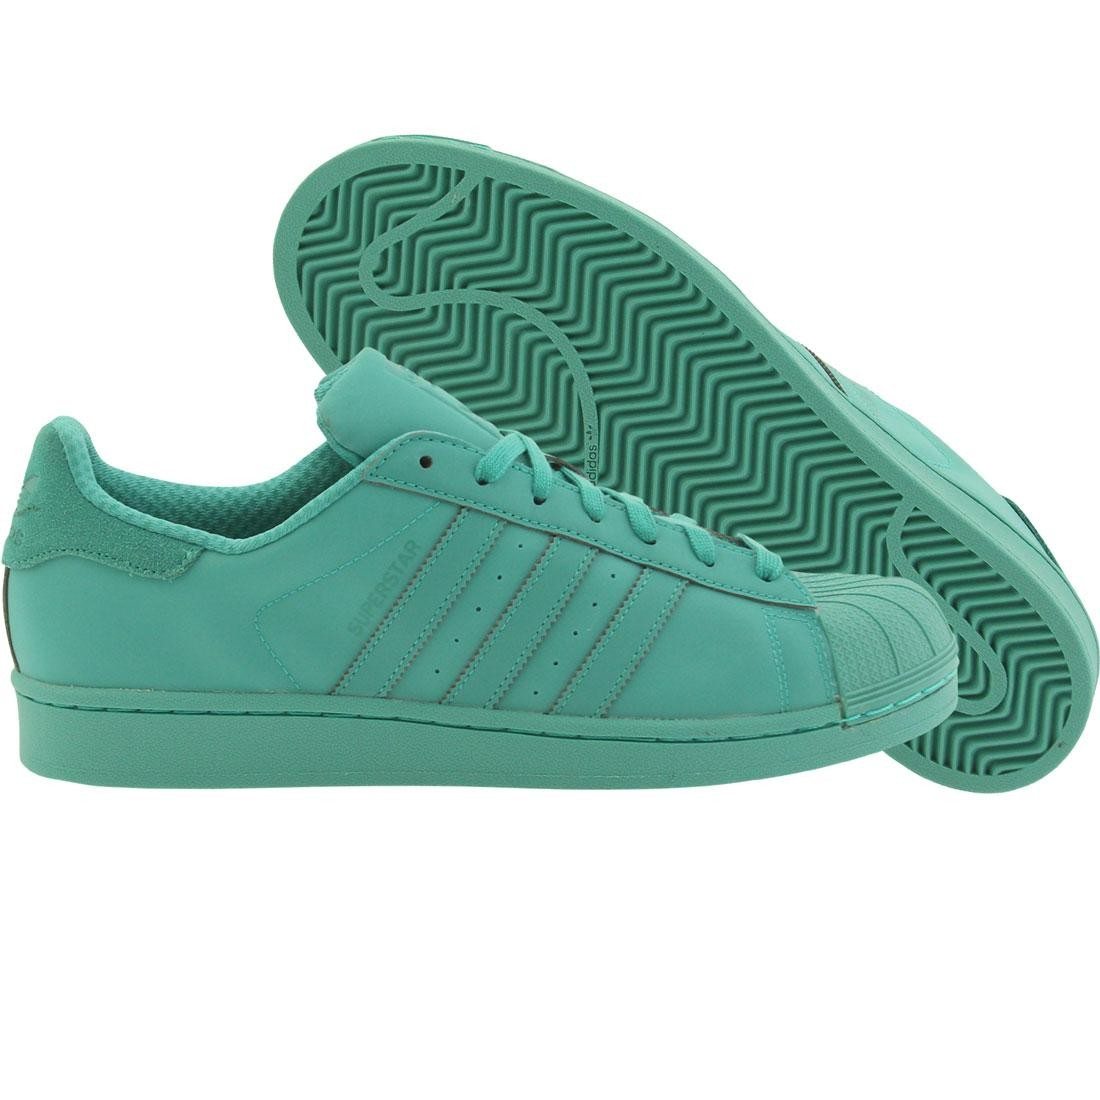 buy popular f0eb1 dcb8e Adidas Men Superstar Adicolor green shock mint